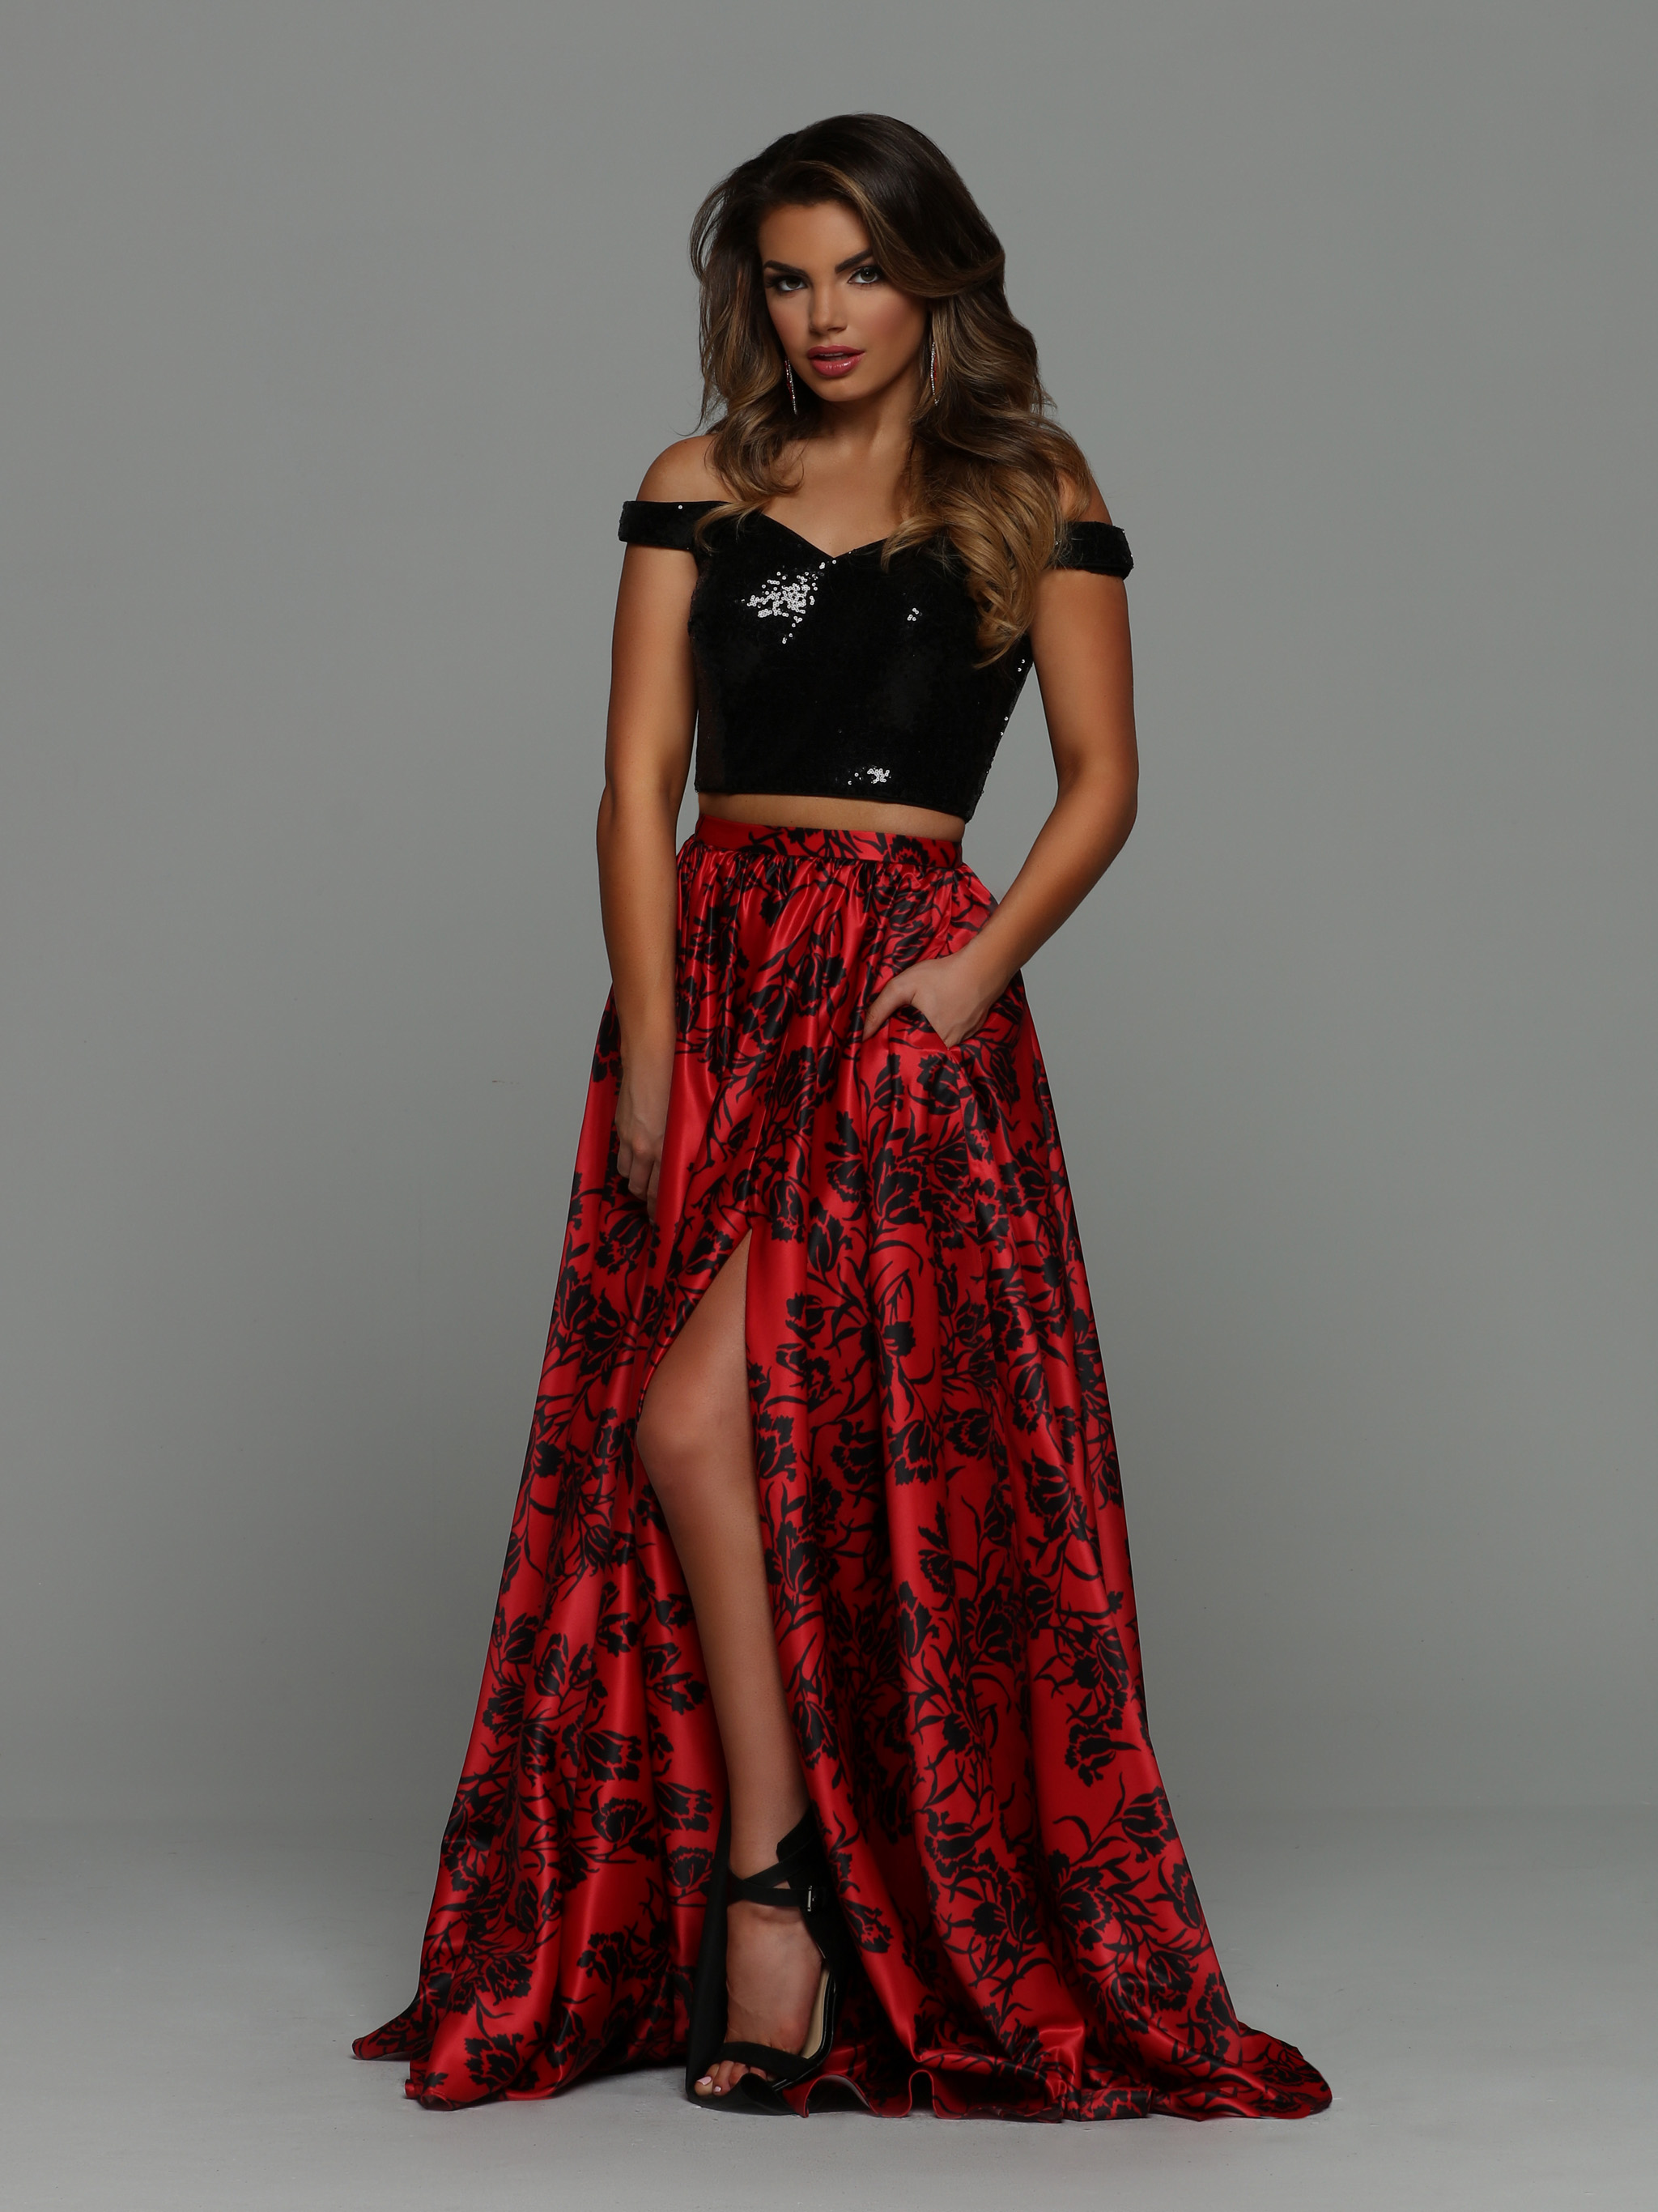 Top Prom Dress Trends 2019 Red Prom Dresses – Sparkle Prom Fashion Blog 72e9d2848